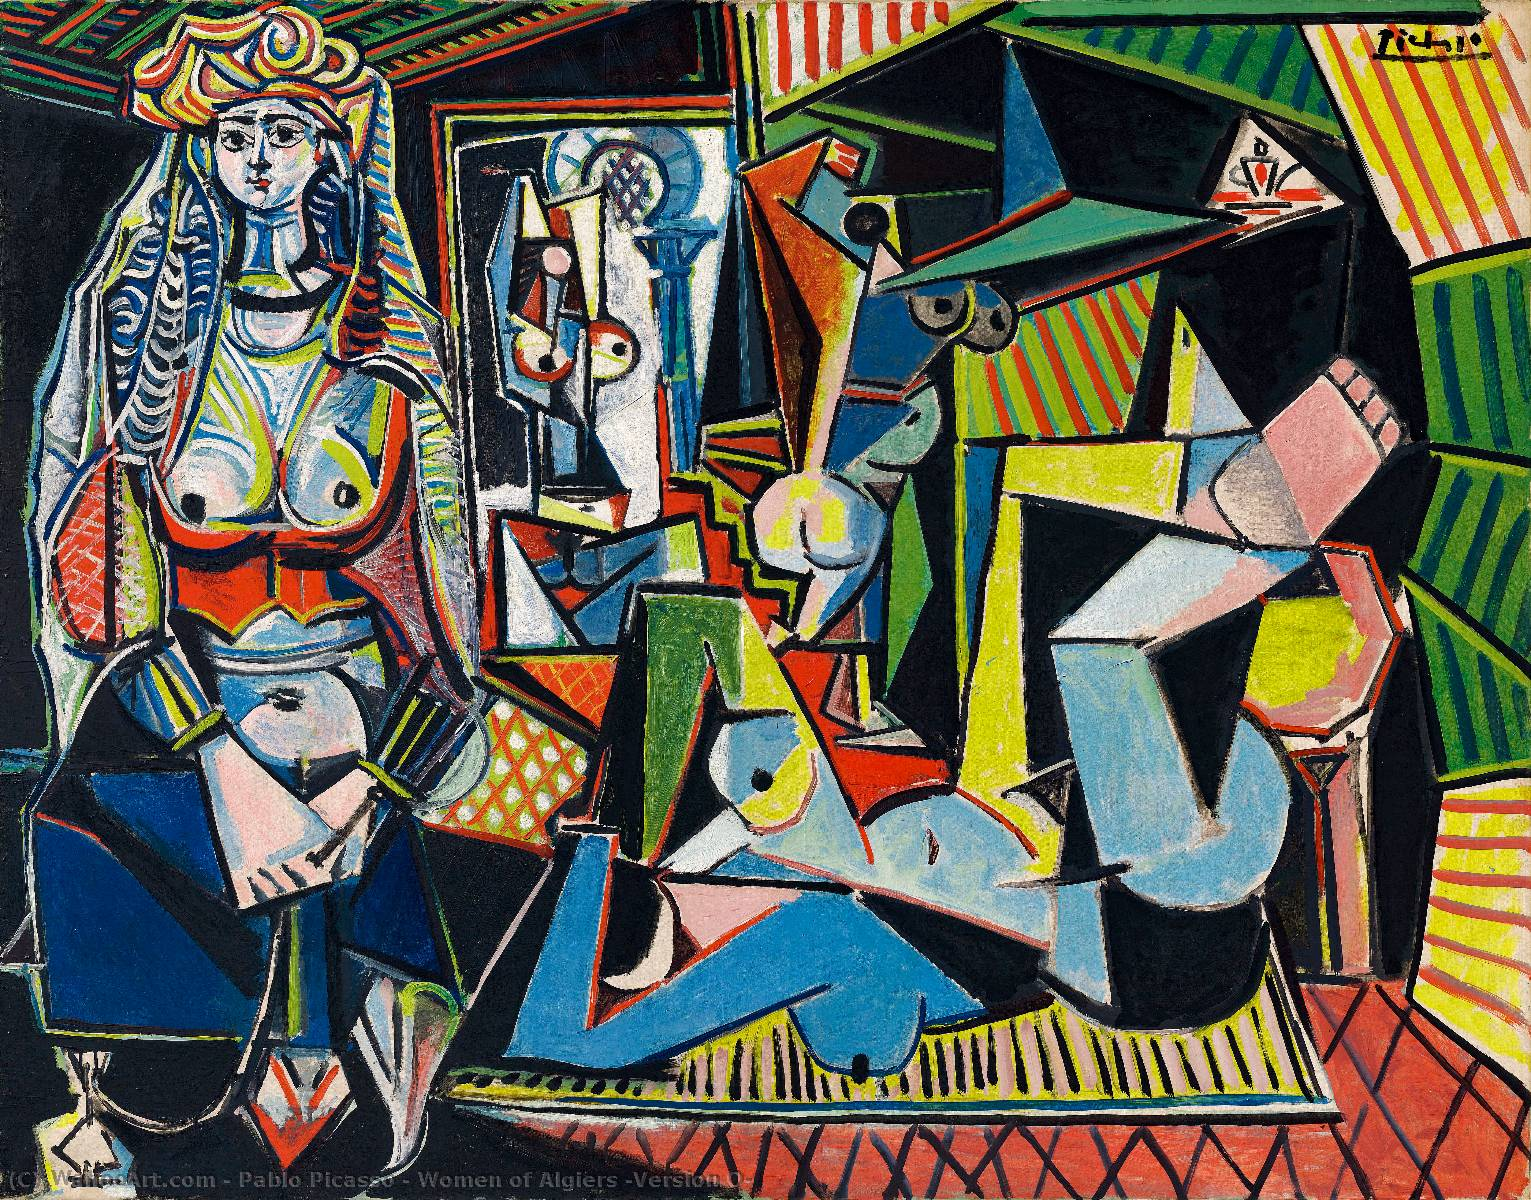 | mujeres de argel ( versión o ) de Pablo Picasso | Most-Famous-Paintings.com